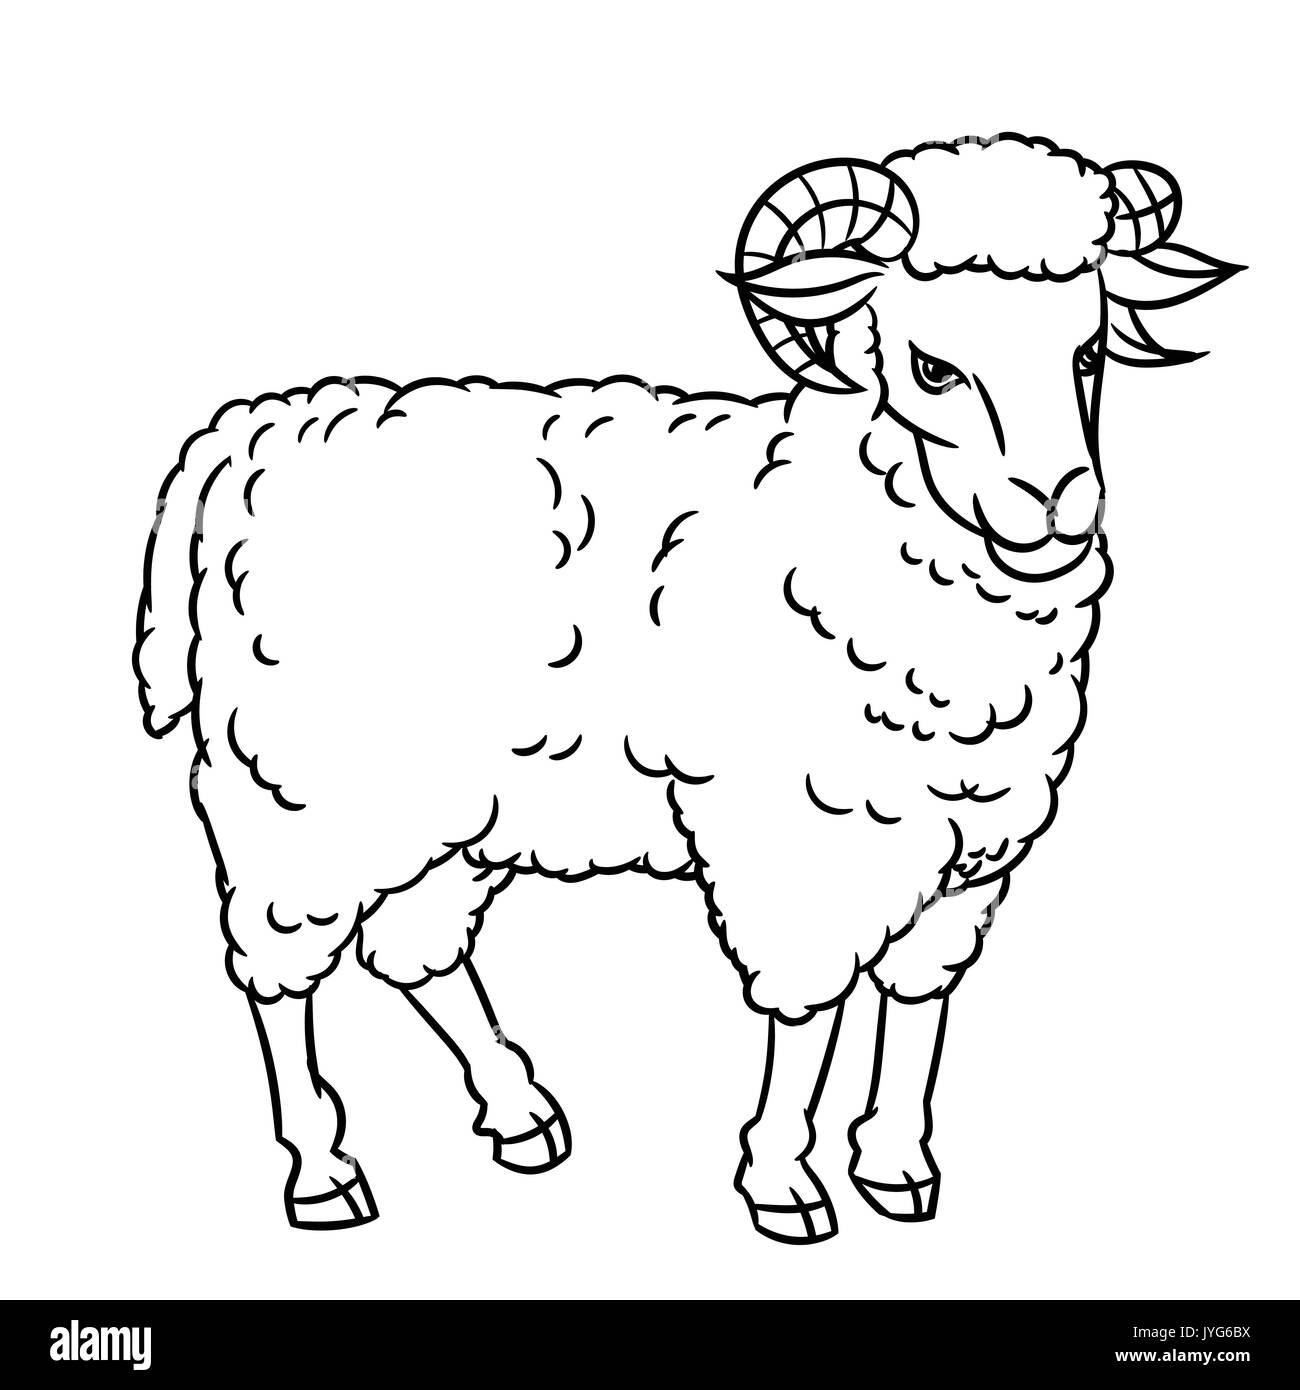 hand drawing sheep farm animals set sketch graphic style design for education text book coloring book